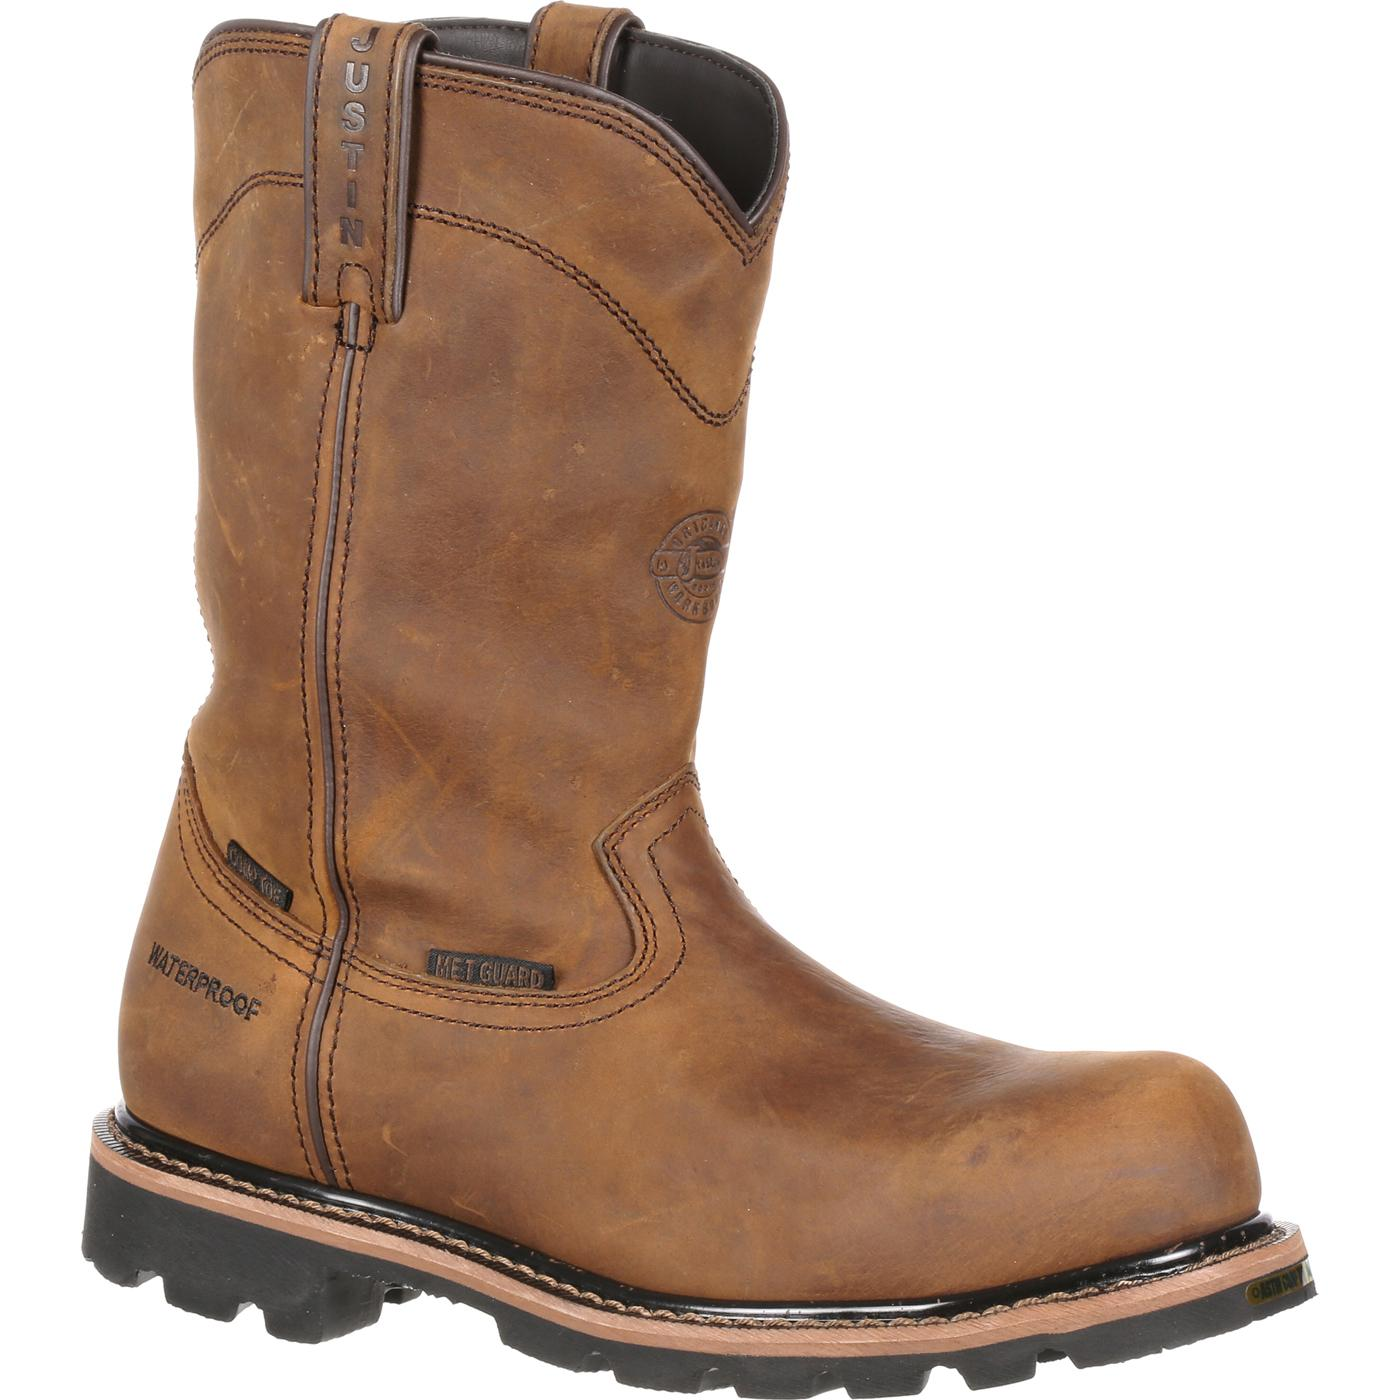 cdd776205dc Justin Work Worker II™ Pulley Composite Toe Internal Met Guard Waterproof  Western Work Boot